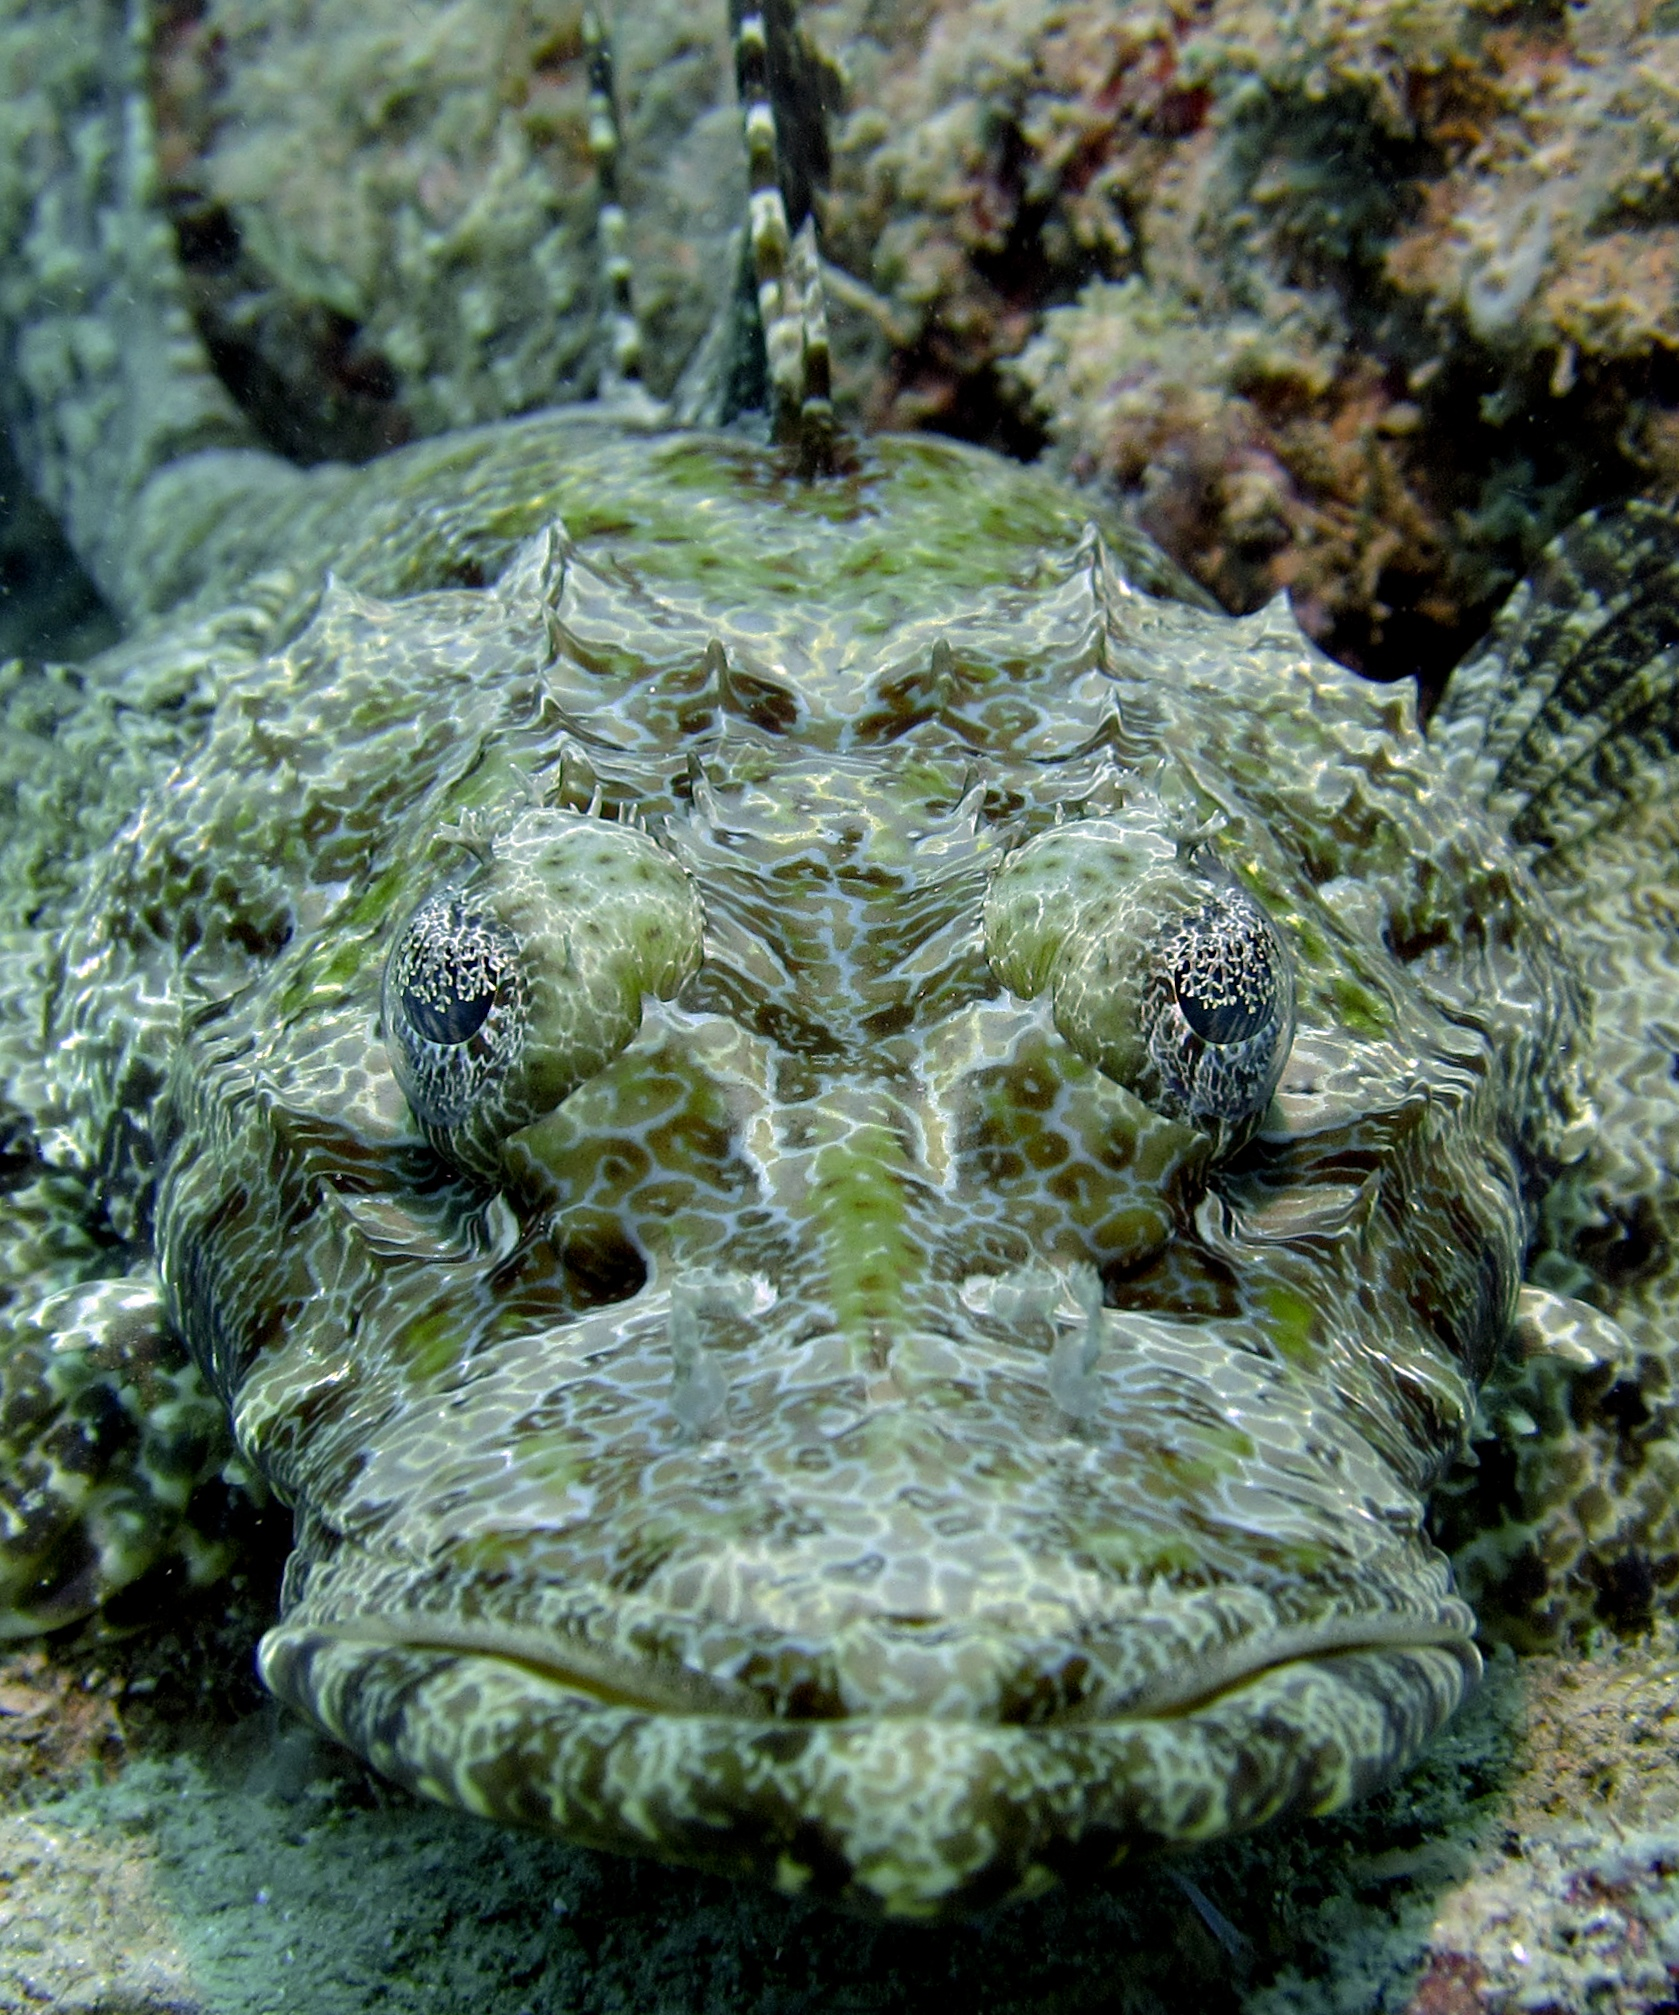 Crocodile Fish, Cymbacephalus beauforti